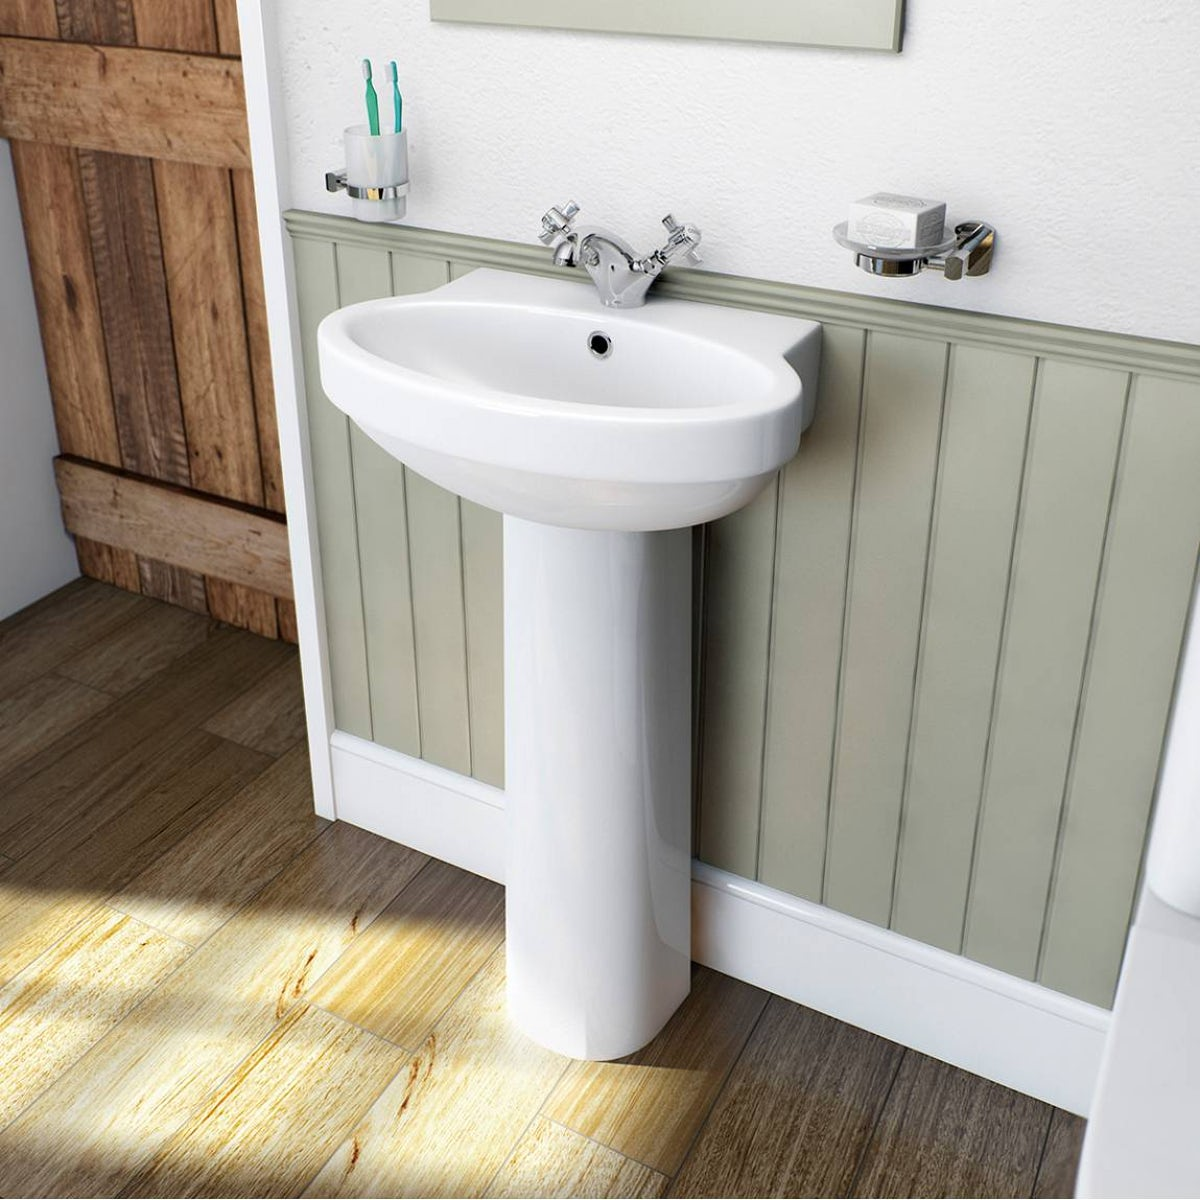 Deco bathroom suite with slipper bath small victoriaplumcom for Slipper bathroom suites